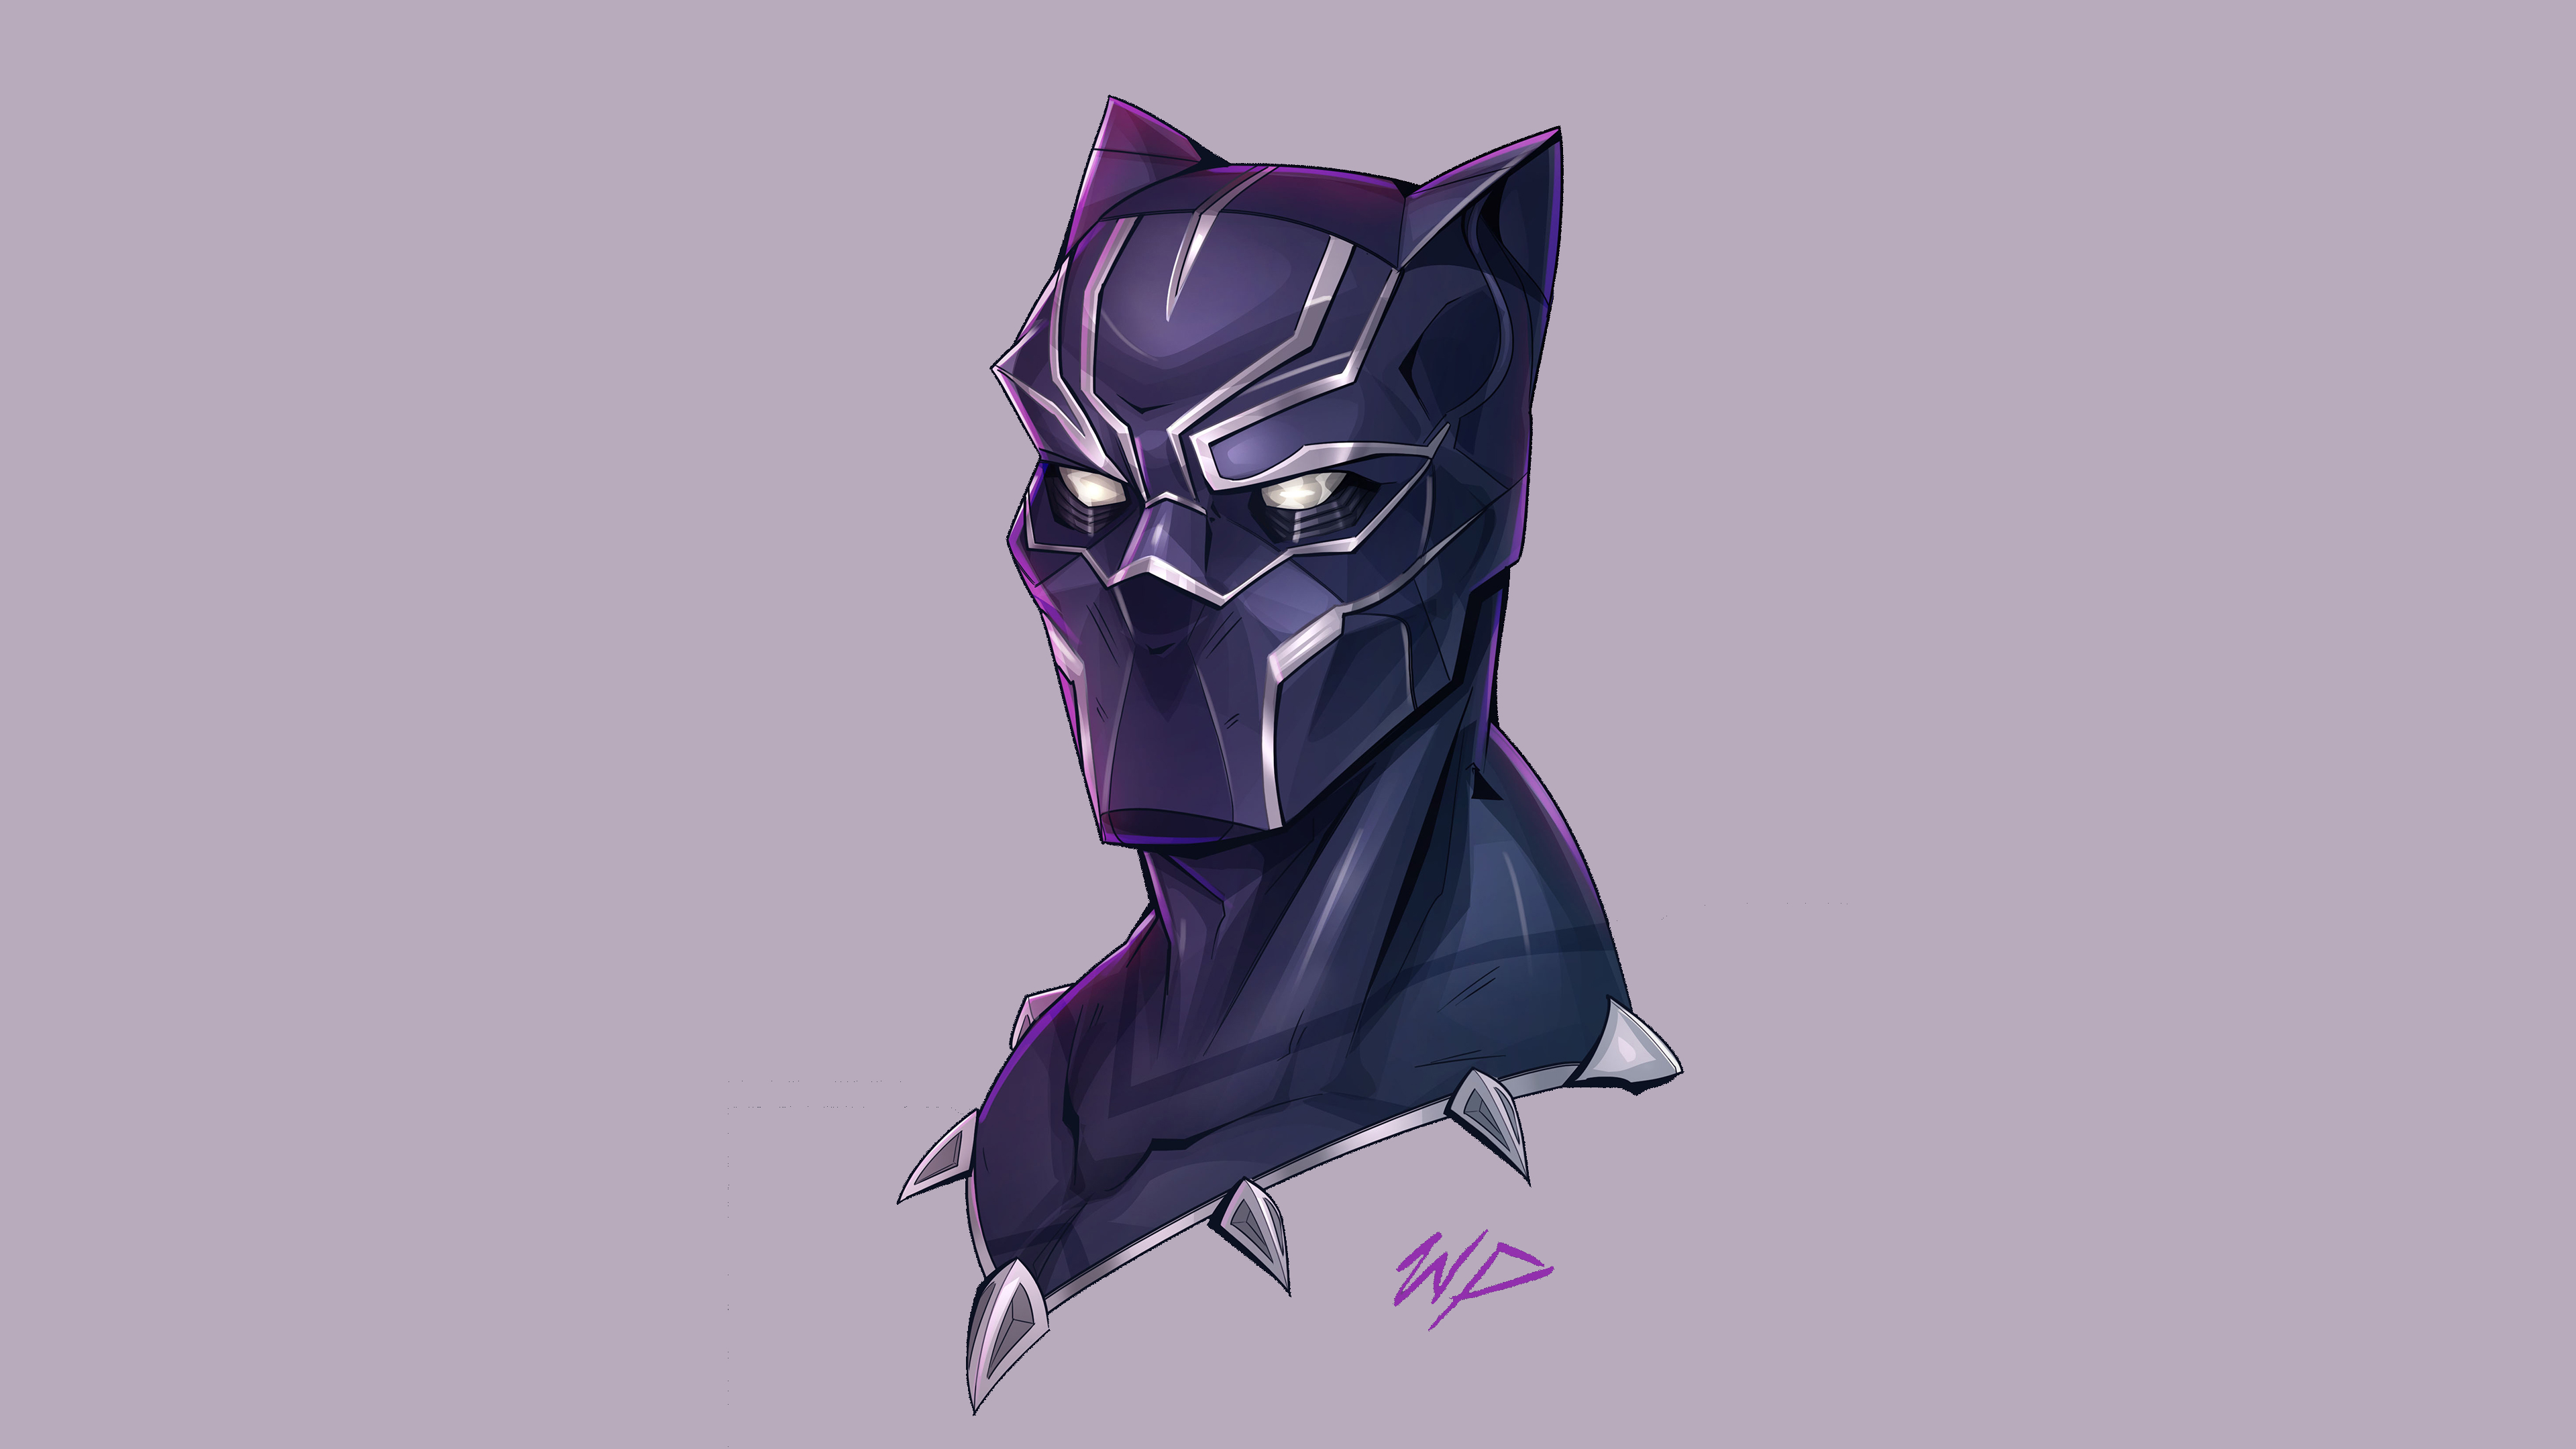 Wallpaper 4k Black Panther Headshot Minimalism 4k Wallpapers Artist Wallpapers Artwork Wallpapers Black Panther Wallpapers Deviantart Wallpapers Digital Art Wallpapers Hd Wallpapers Minimalism Wallpapers